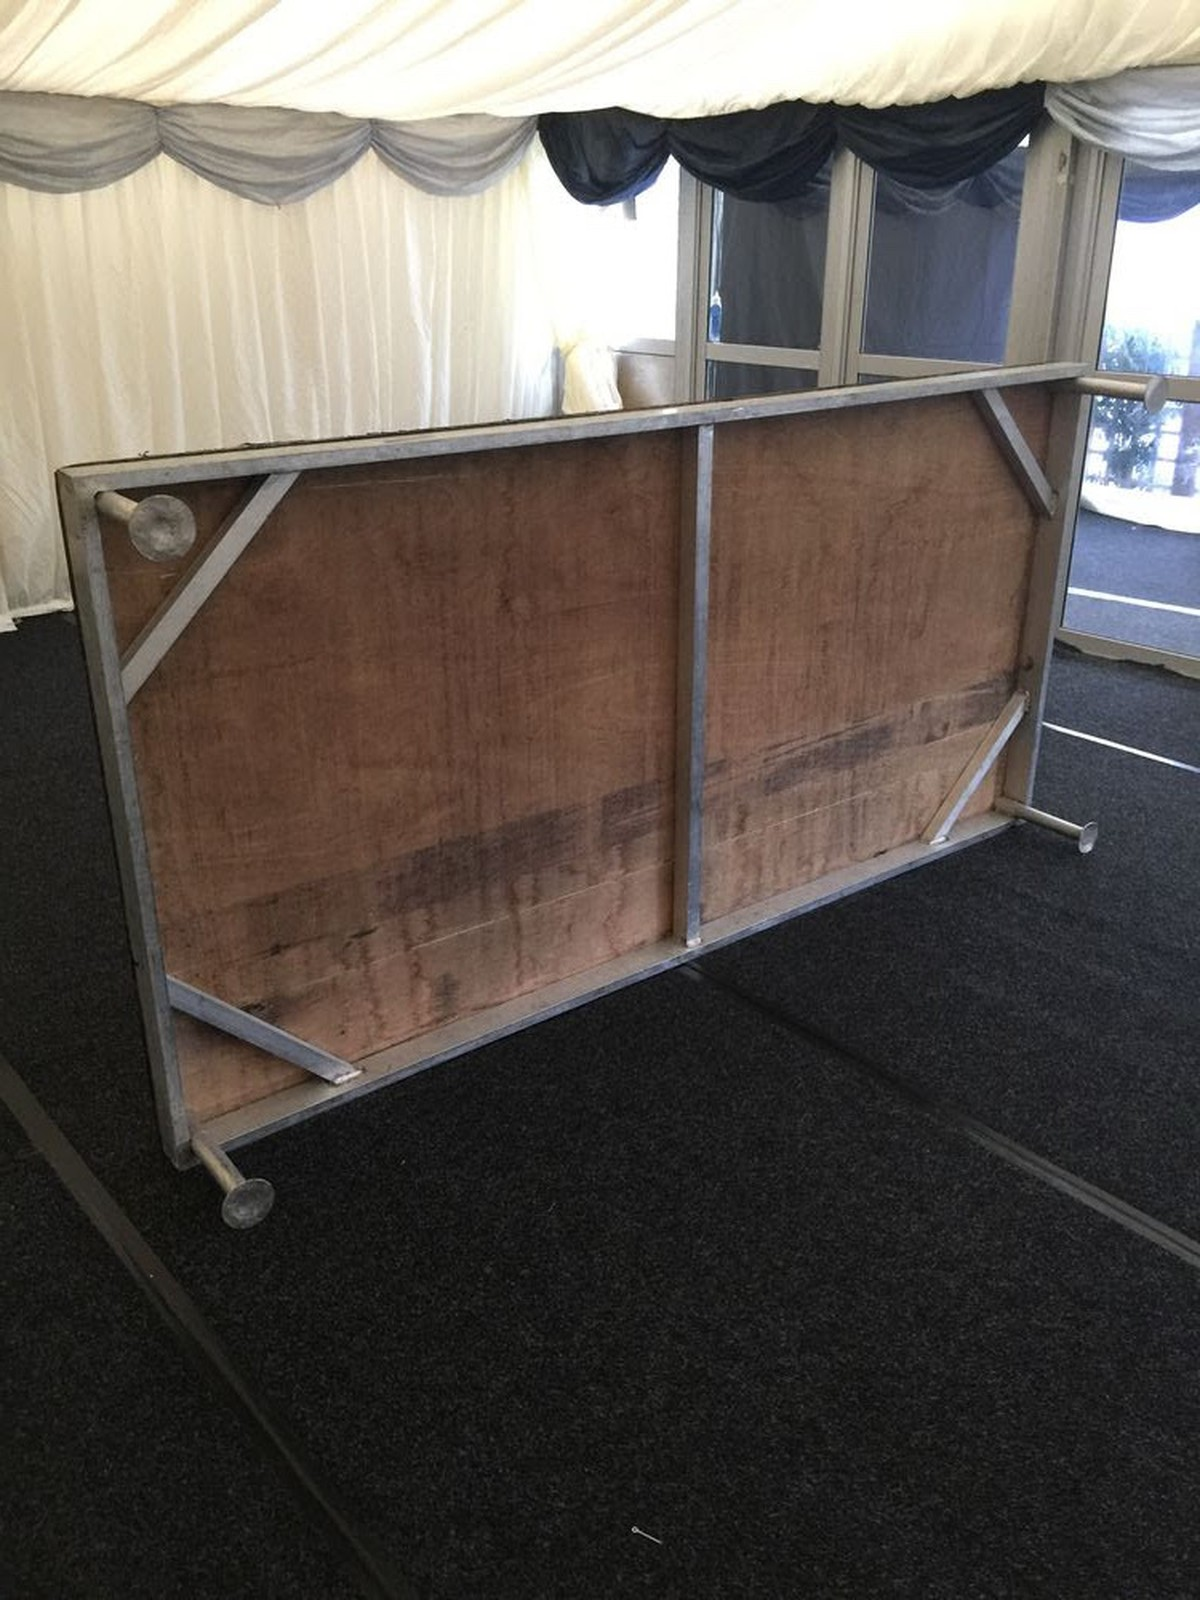 Curlew Secondhand Marquees Portable Stages Stage